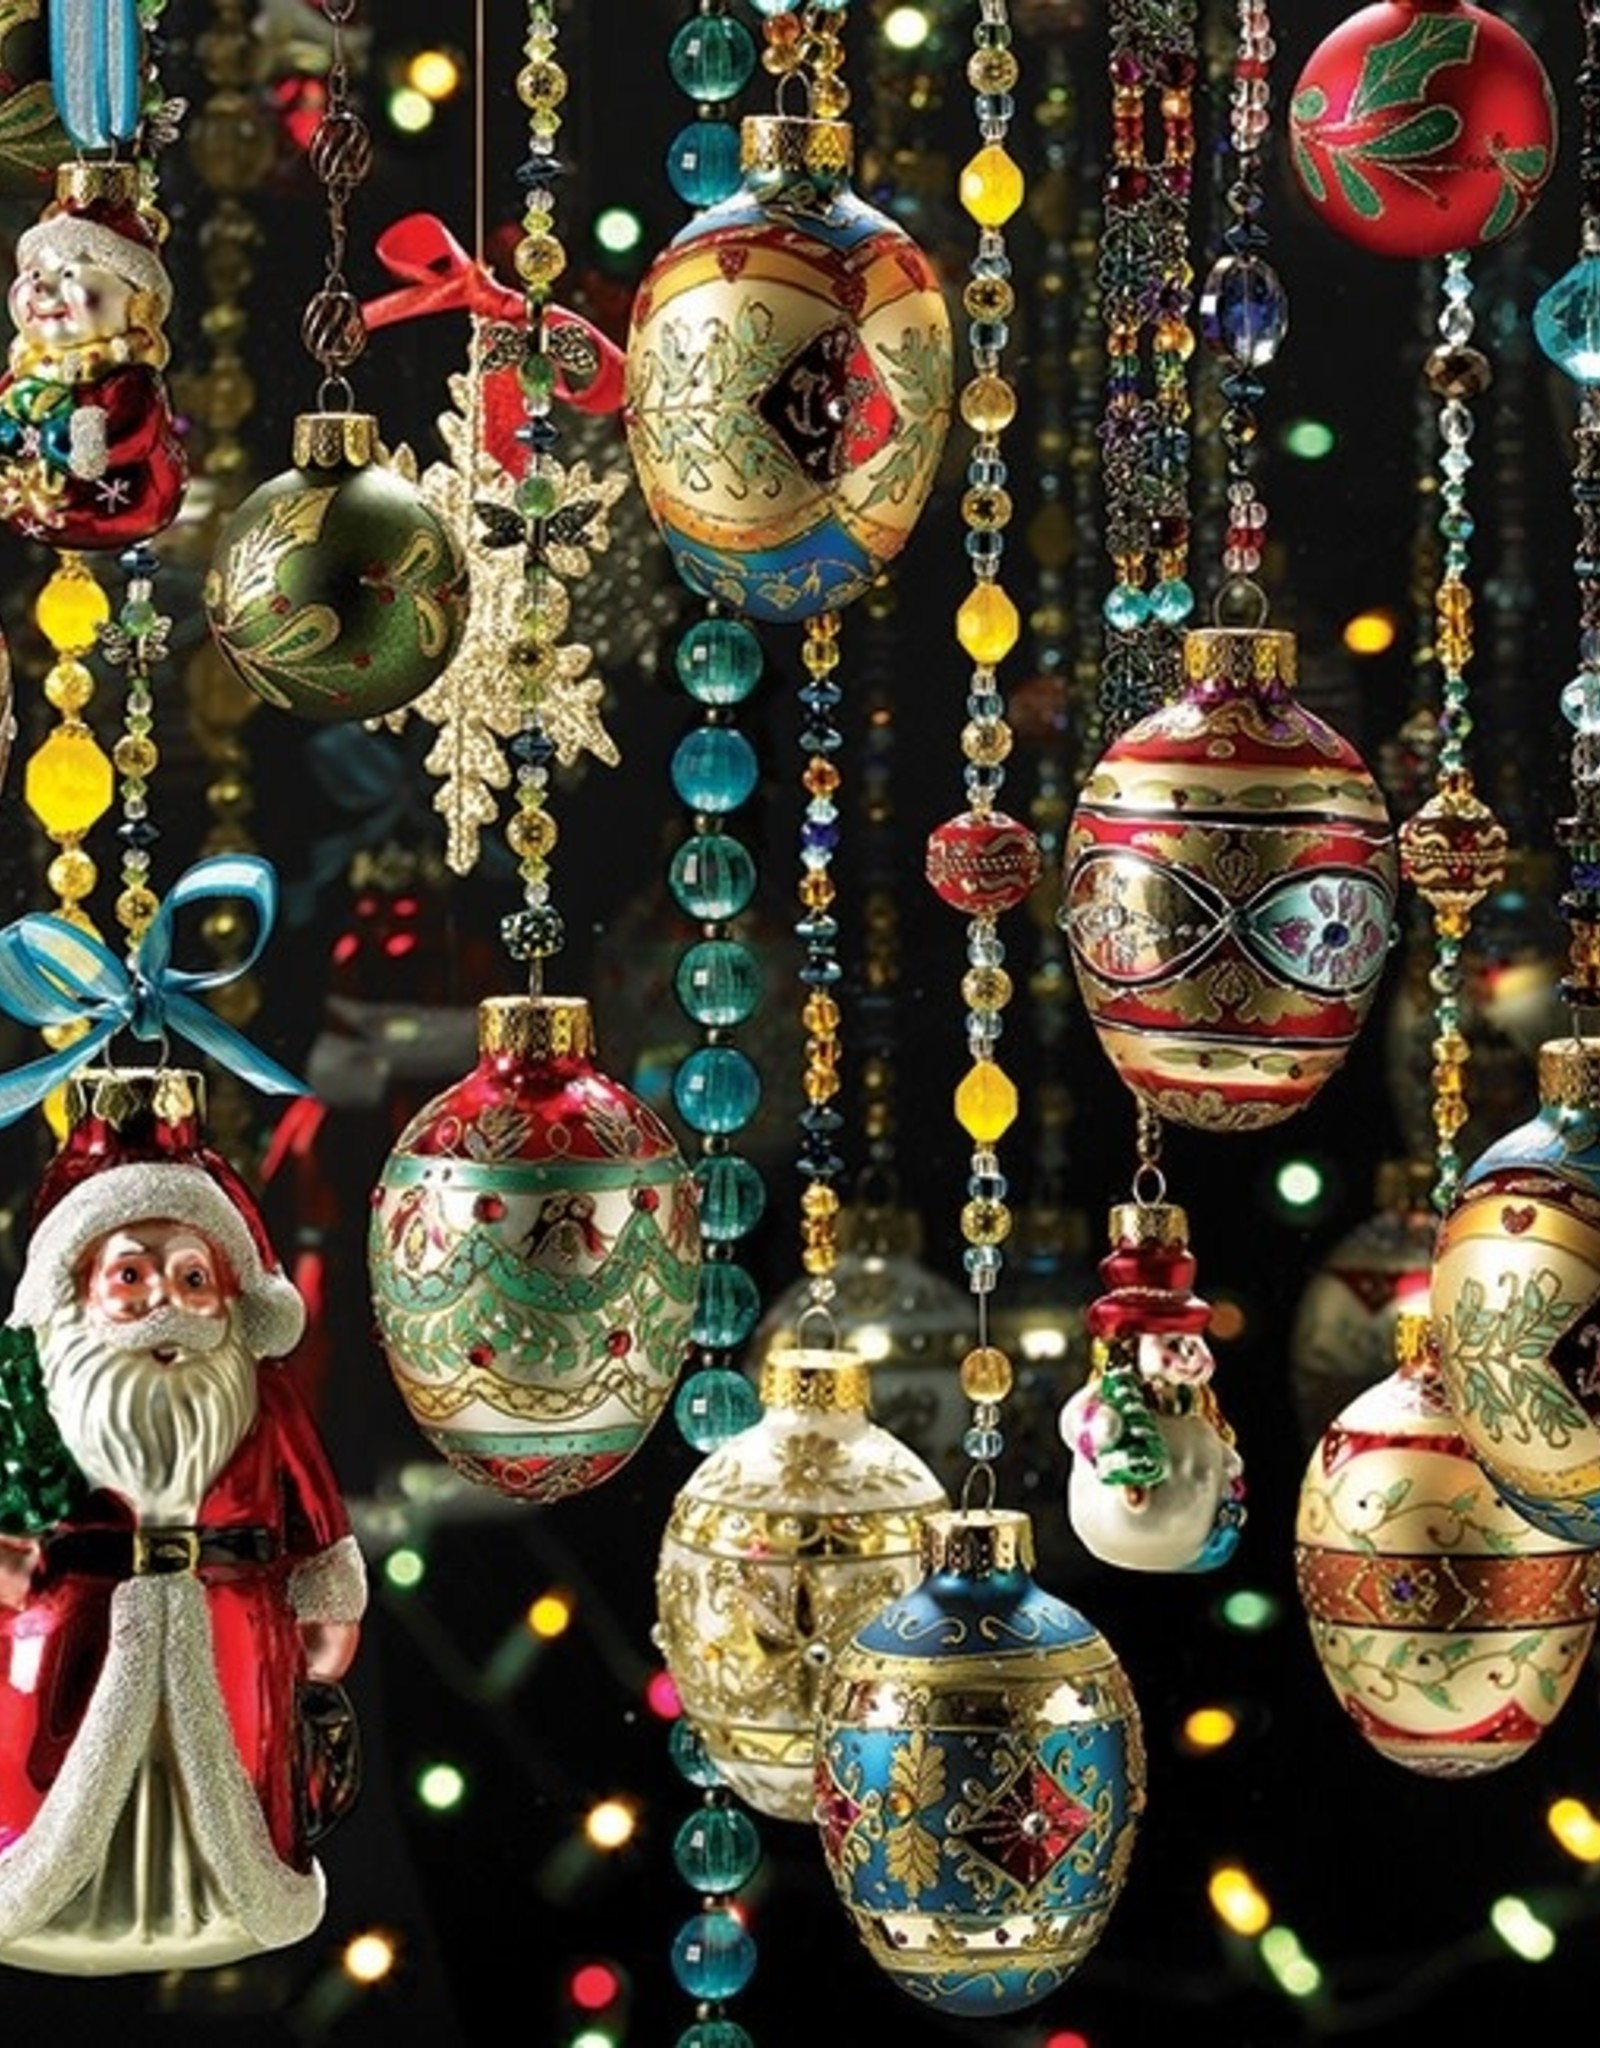 Cobble Hill Christmas Ornaments 1000pc